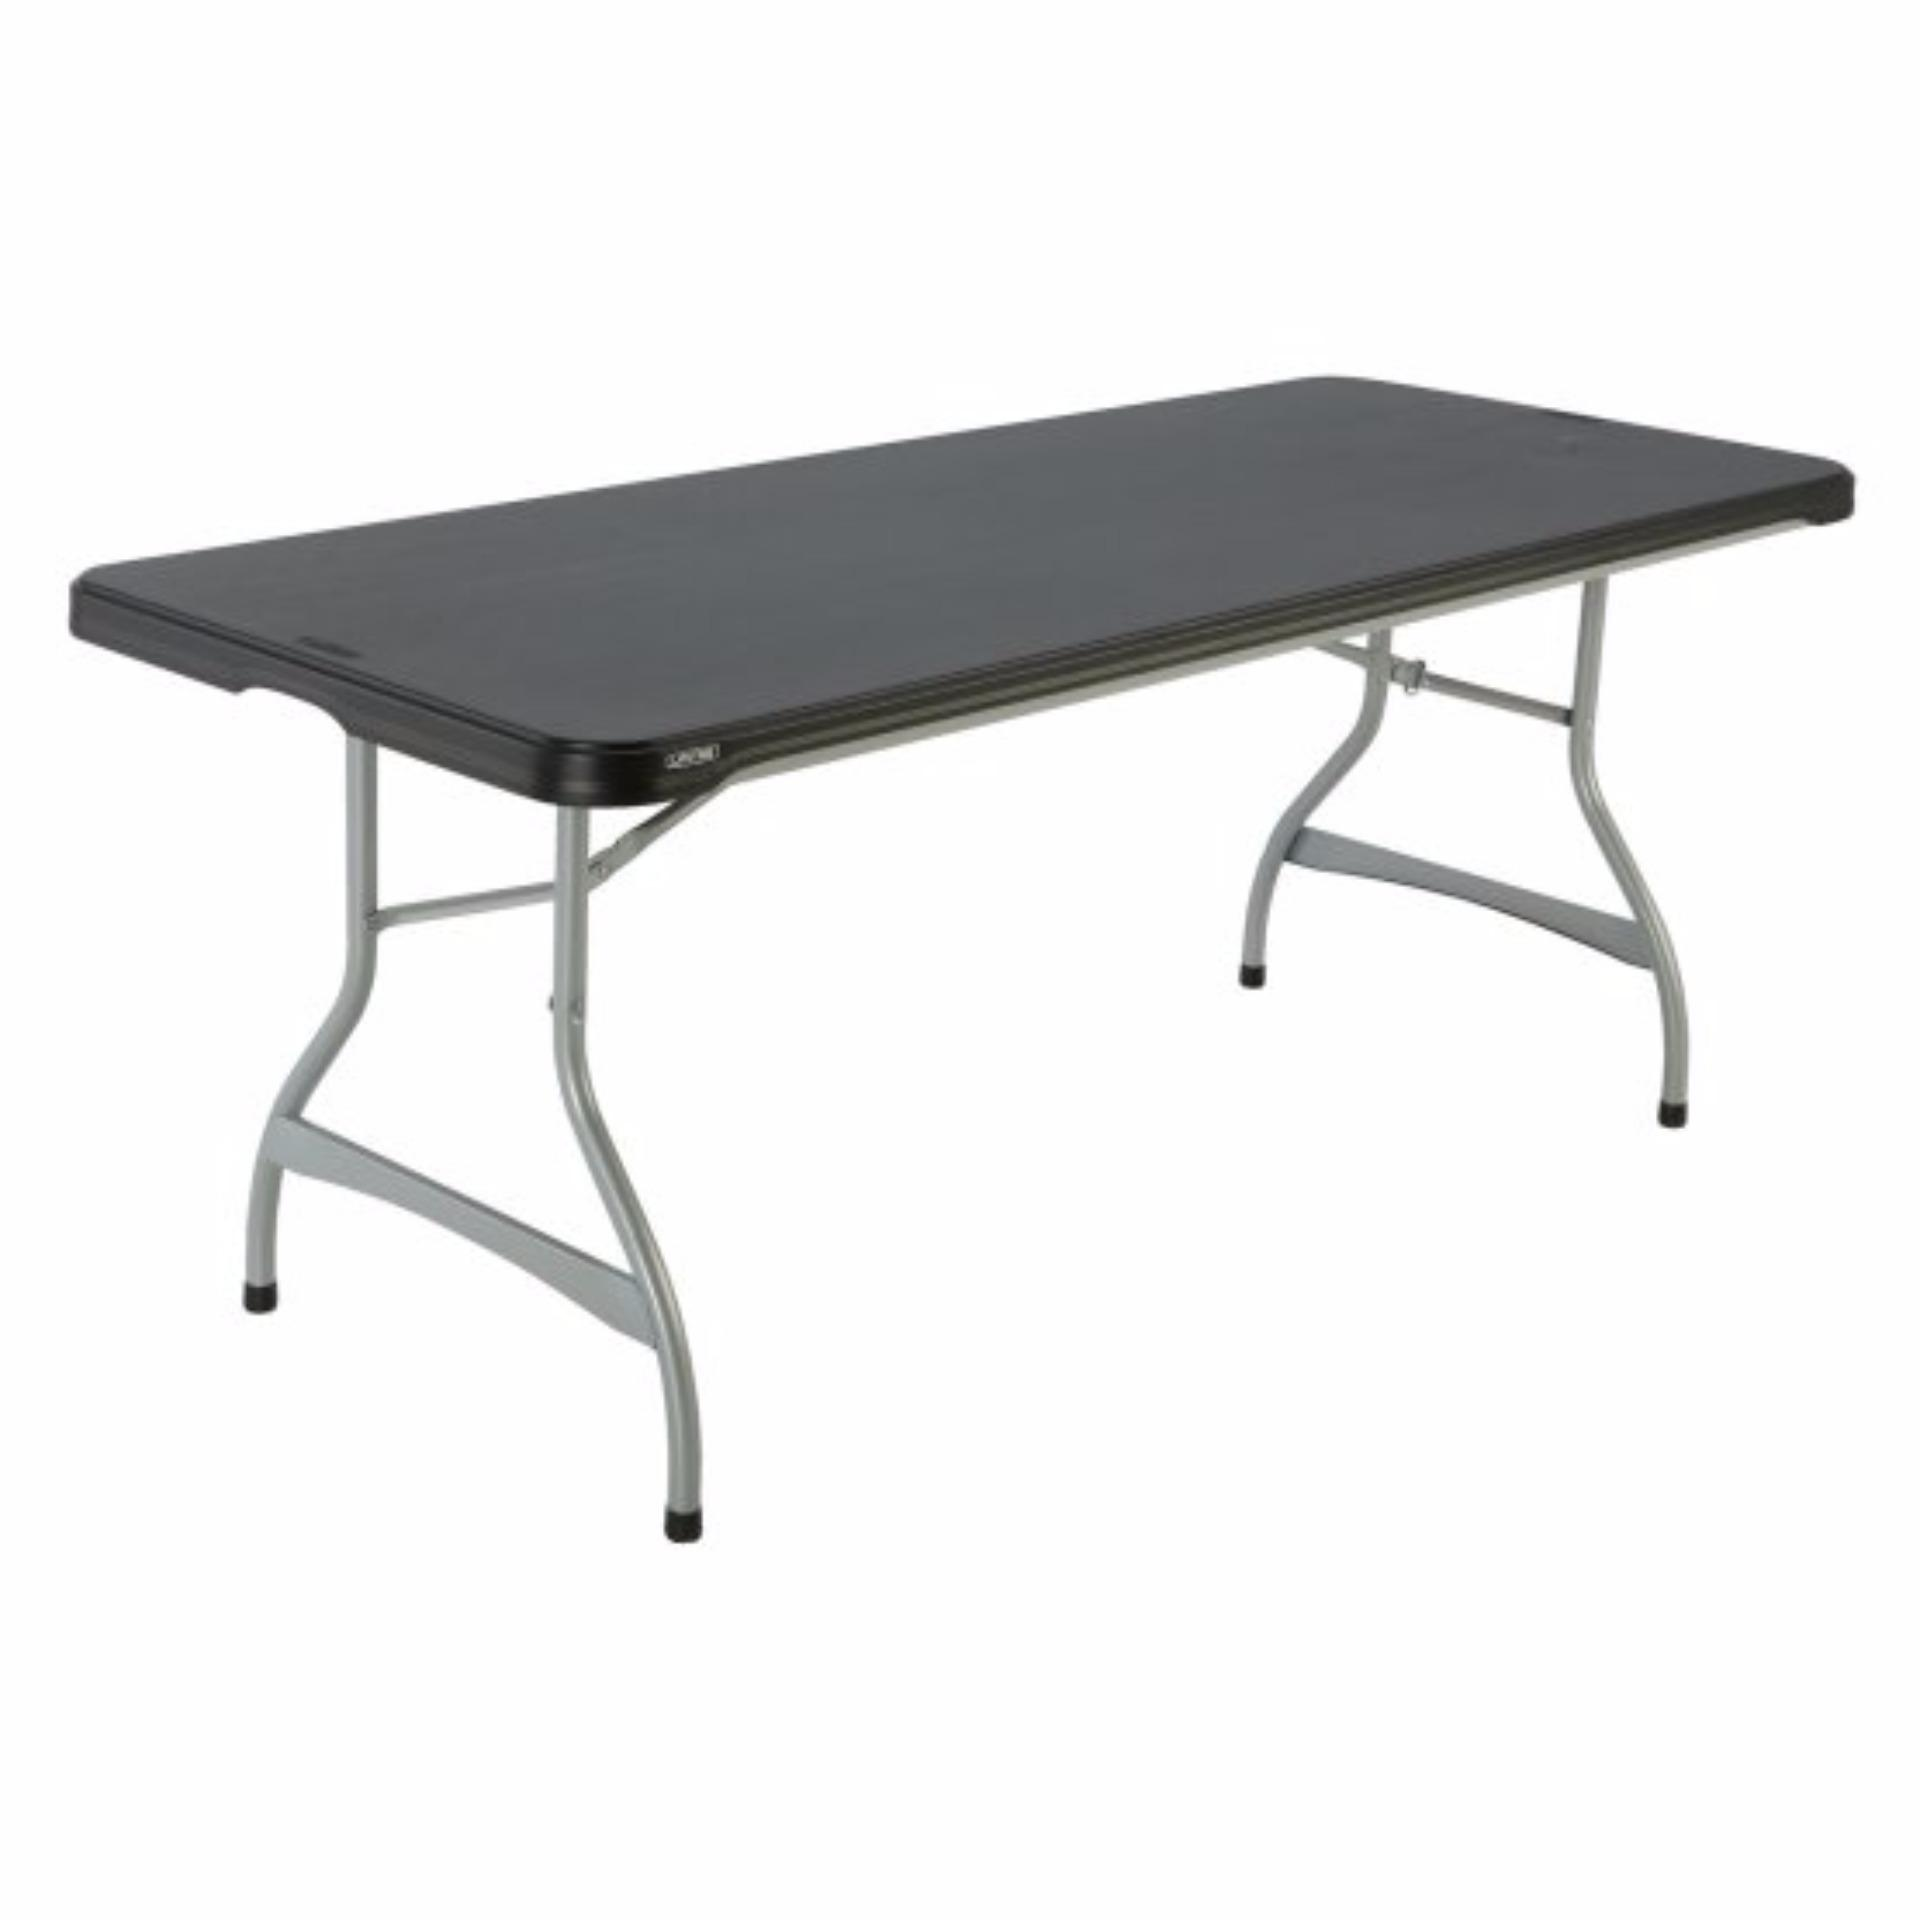 Lifetime Black 6 foot mercial Stacking Folding Table